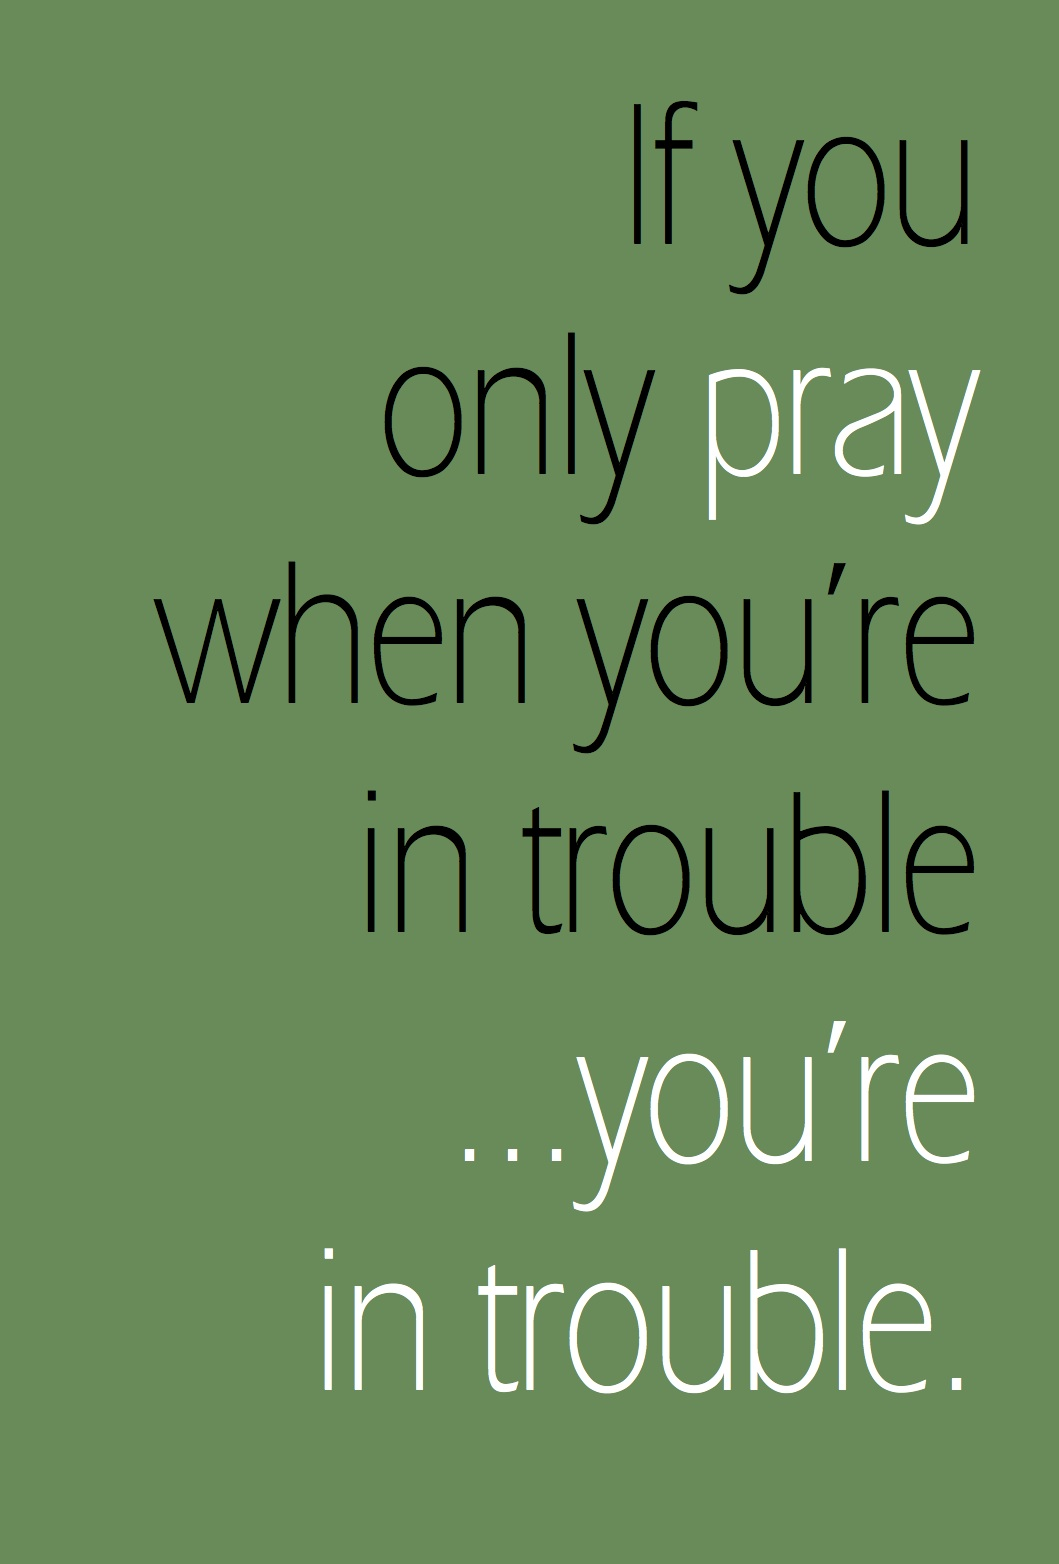 Quotes On Prayer Adorable 17 Best Images About Faith On Pinterest  Buddhism Buddhists And .